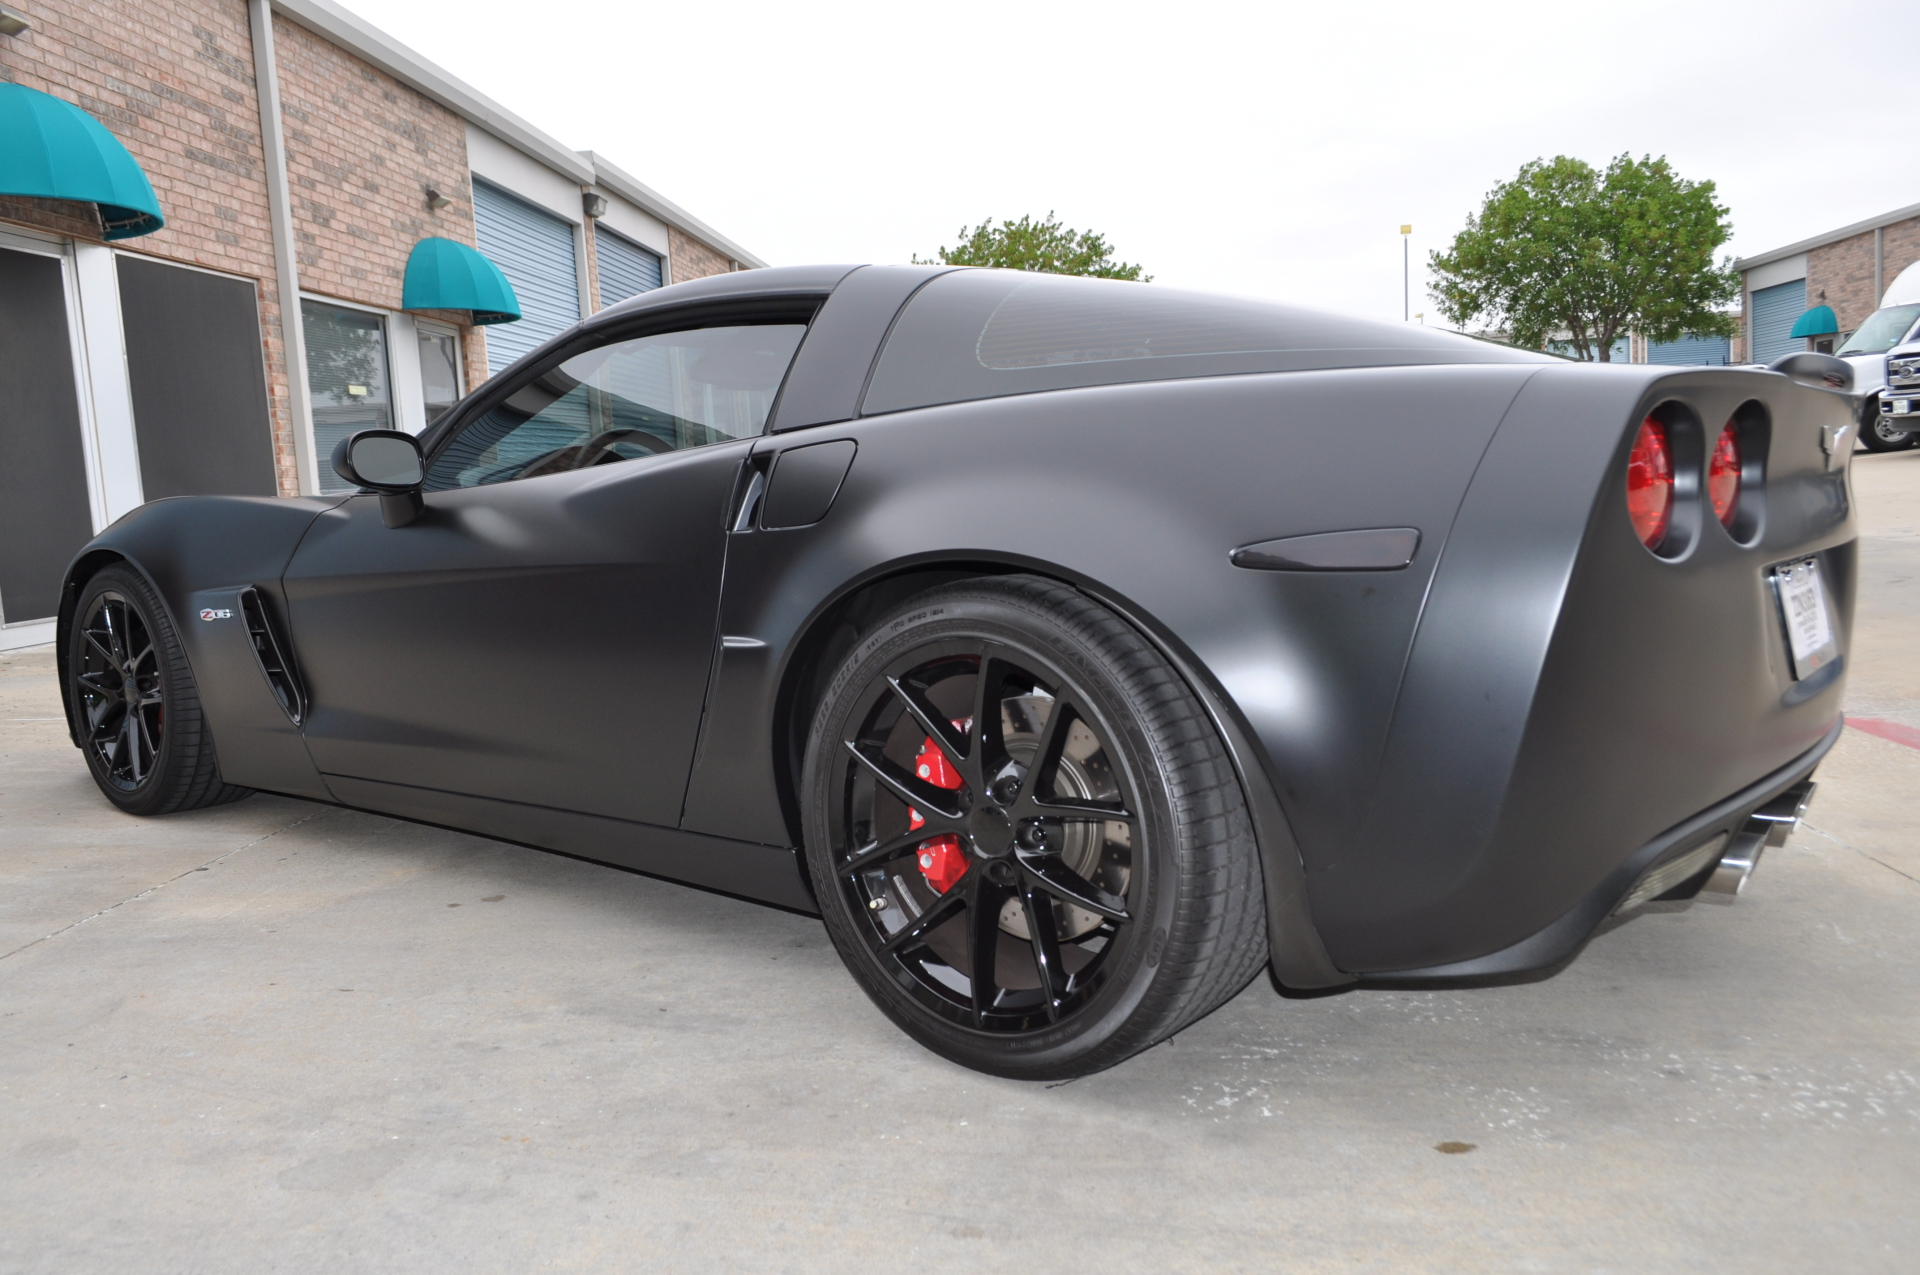 Satin Black Corvette wrap, satin black vehicle wrap, vehicle wraps dallas texas, vehicle wraps plano, vette wraps,